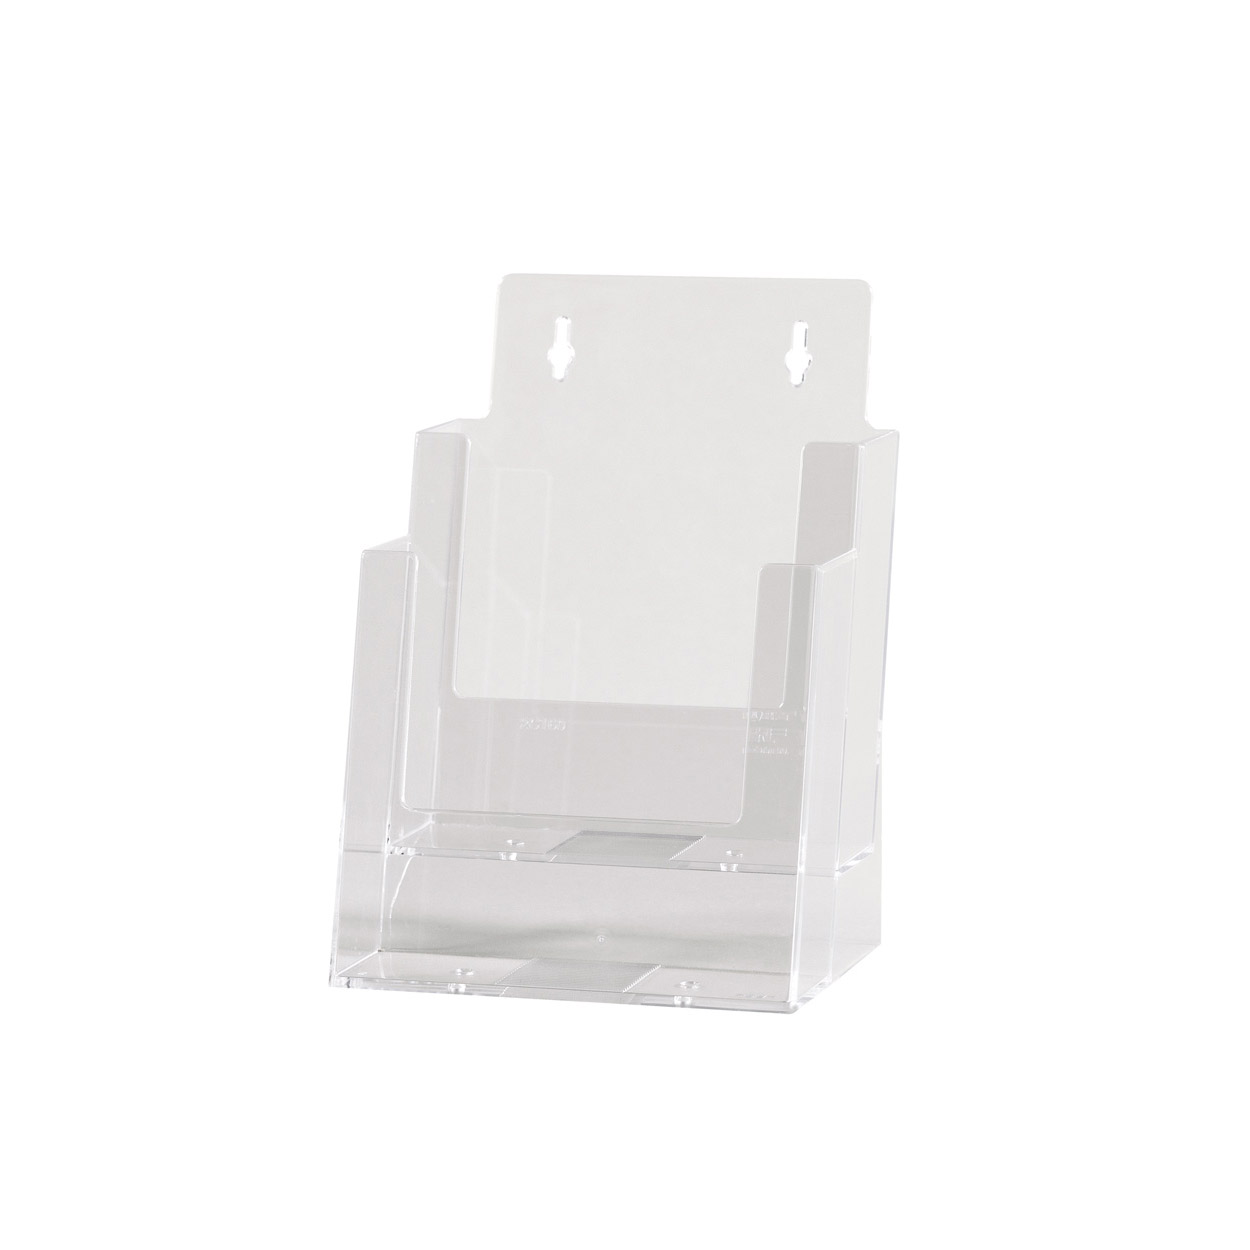 Acrylic Freestanding brochure holder Double Level A5 Size. Dimension 195 H x 170 W x 130mm D